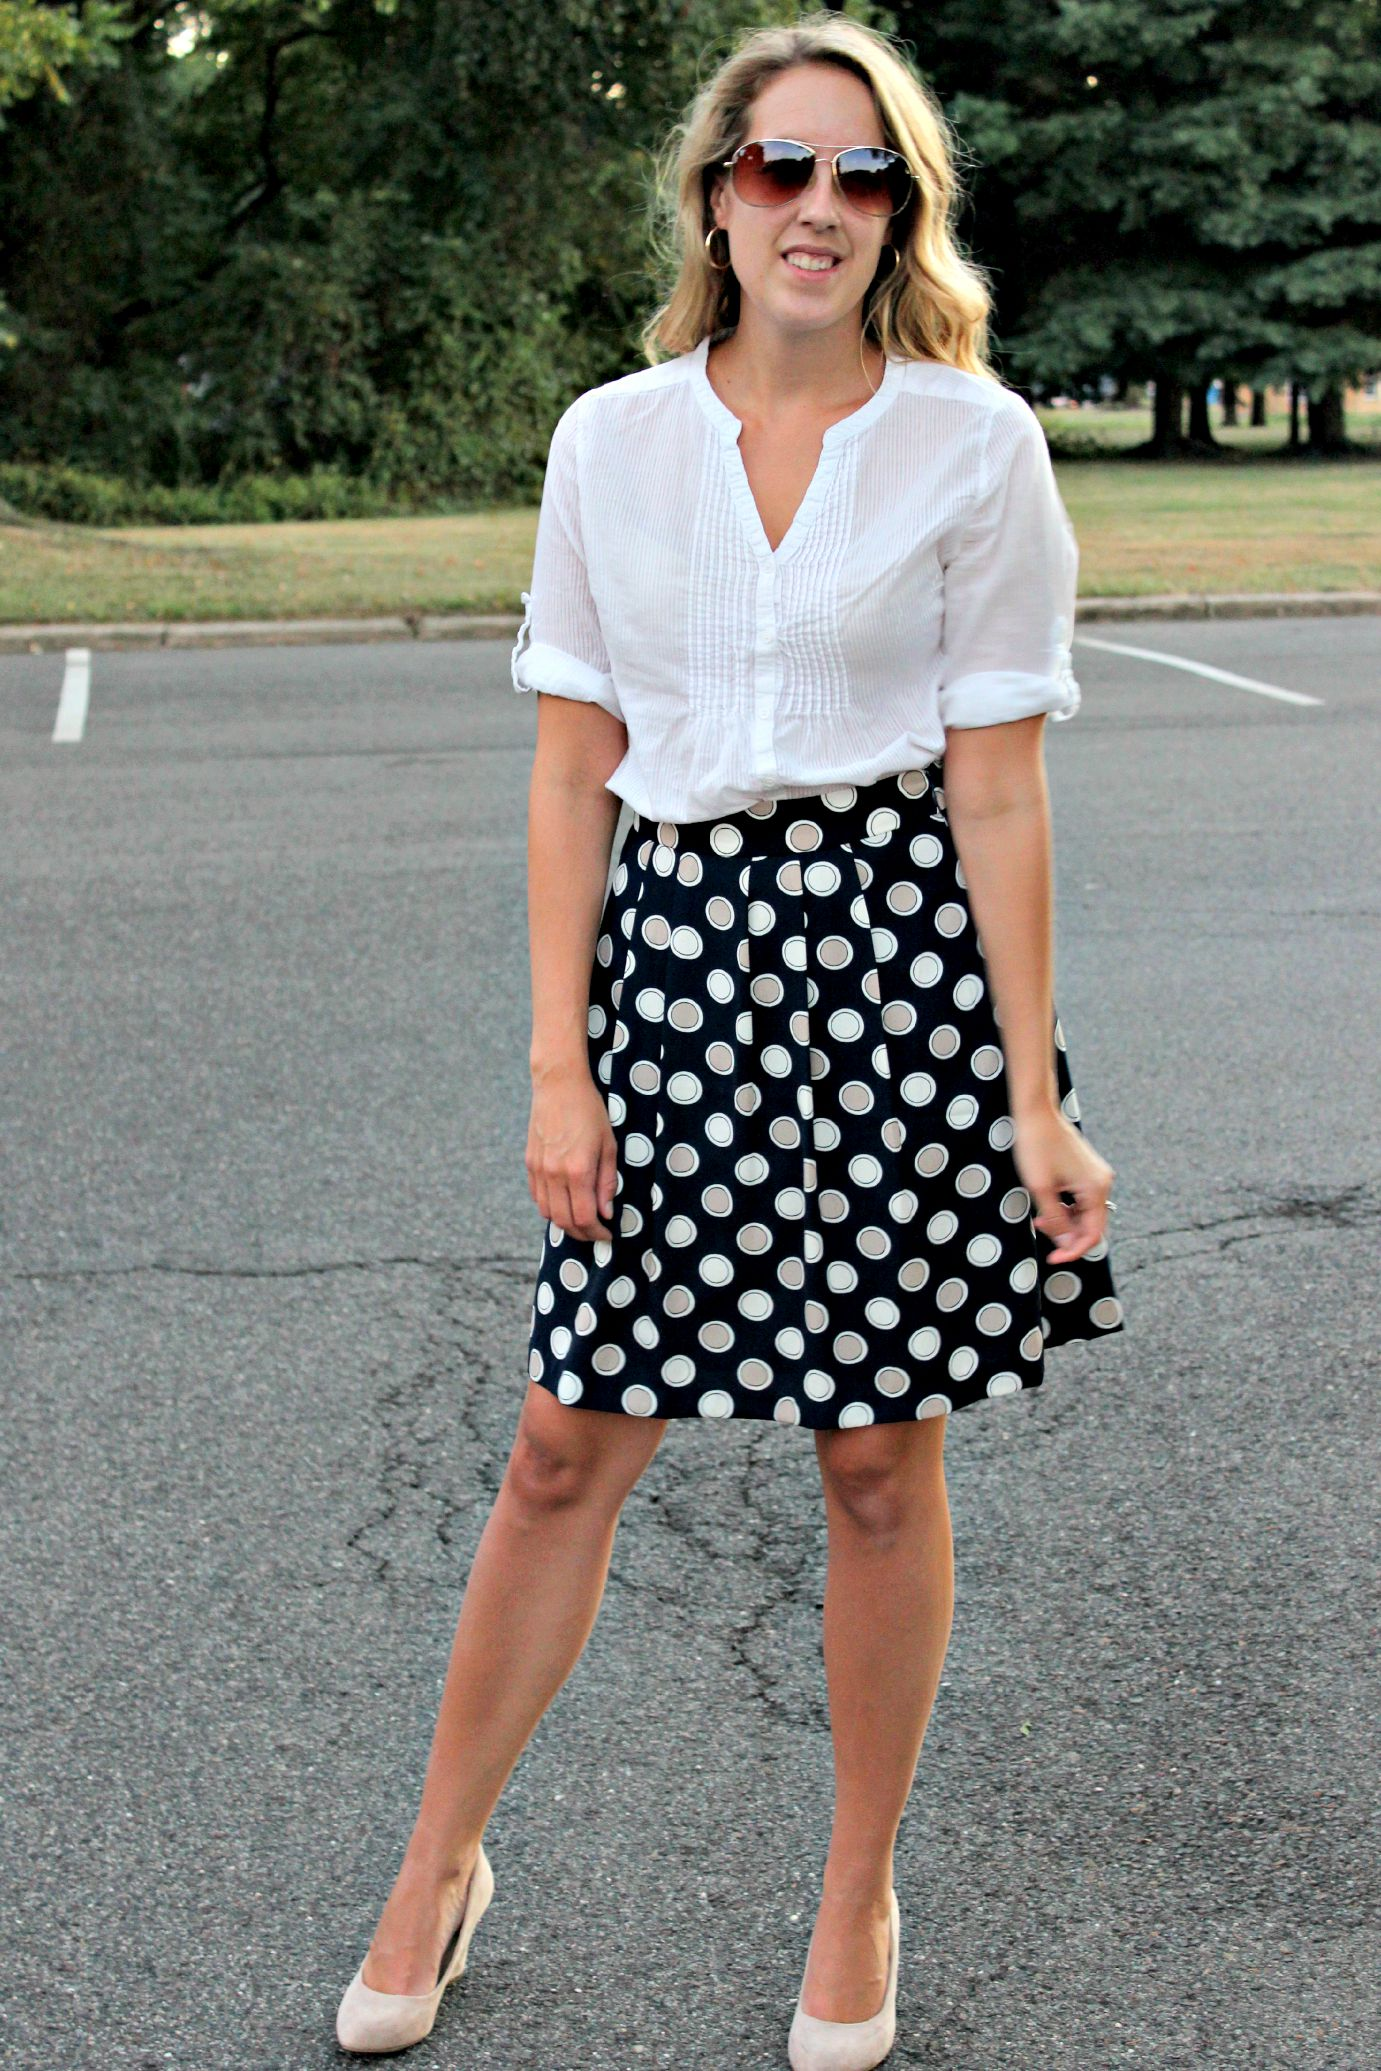 Wearing: The White Blouse